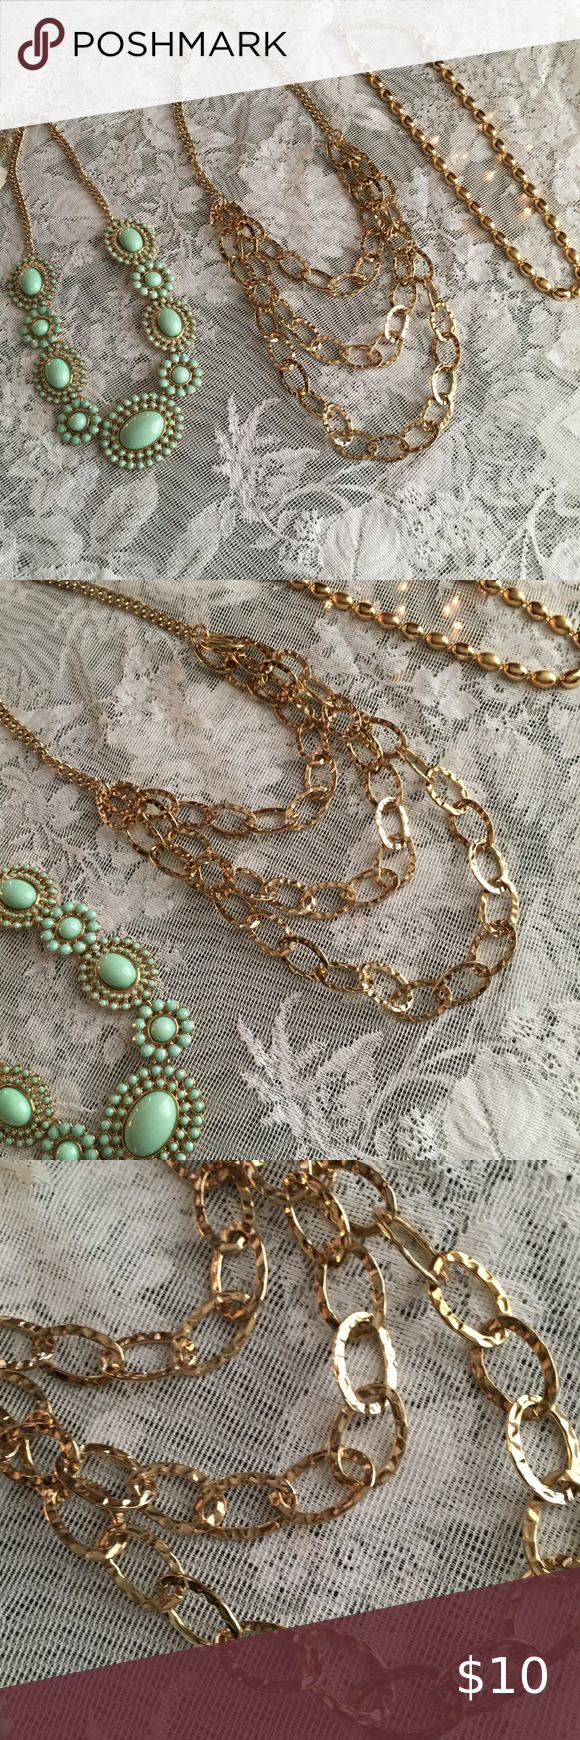 All Wearable Lot of 10 Necklaces